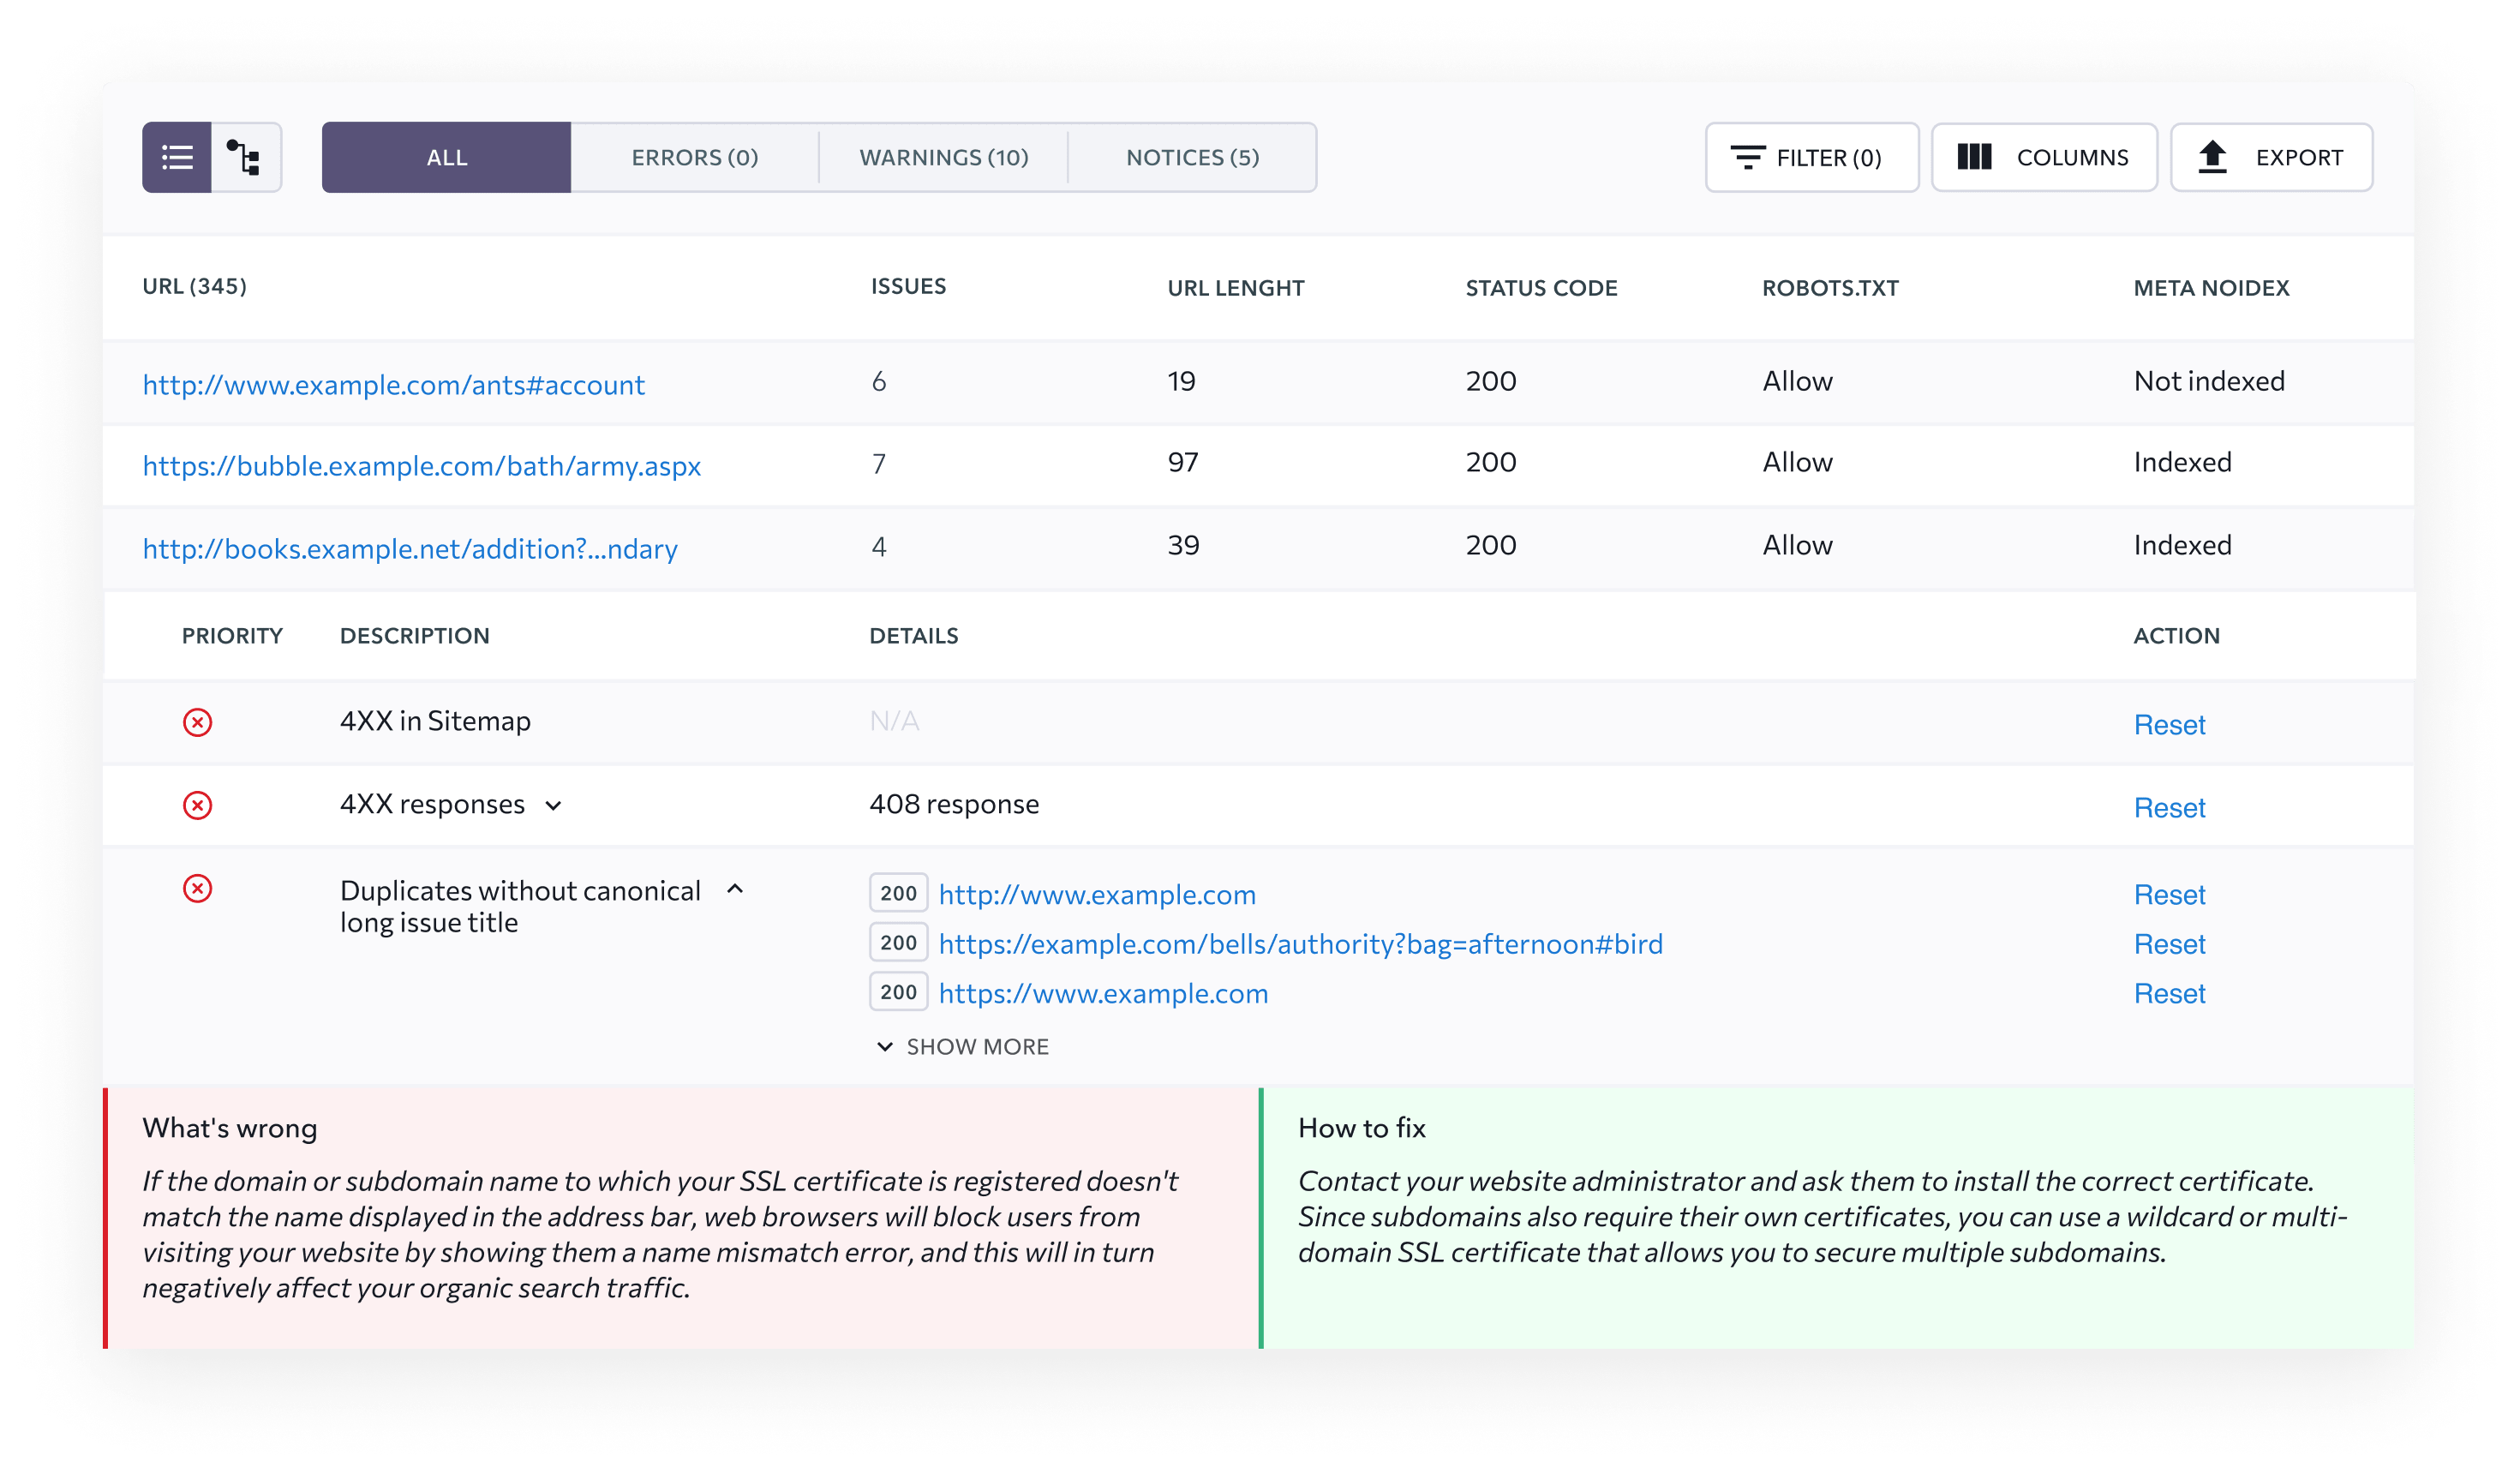 All the major metrics for every single page, link, or resource